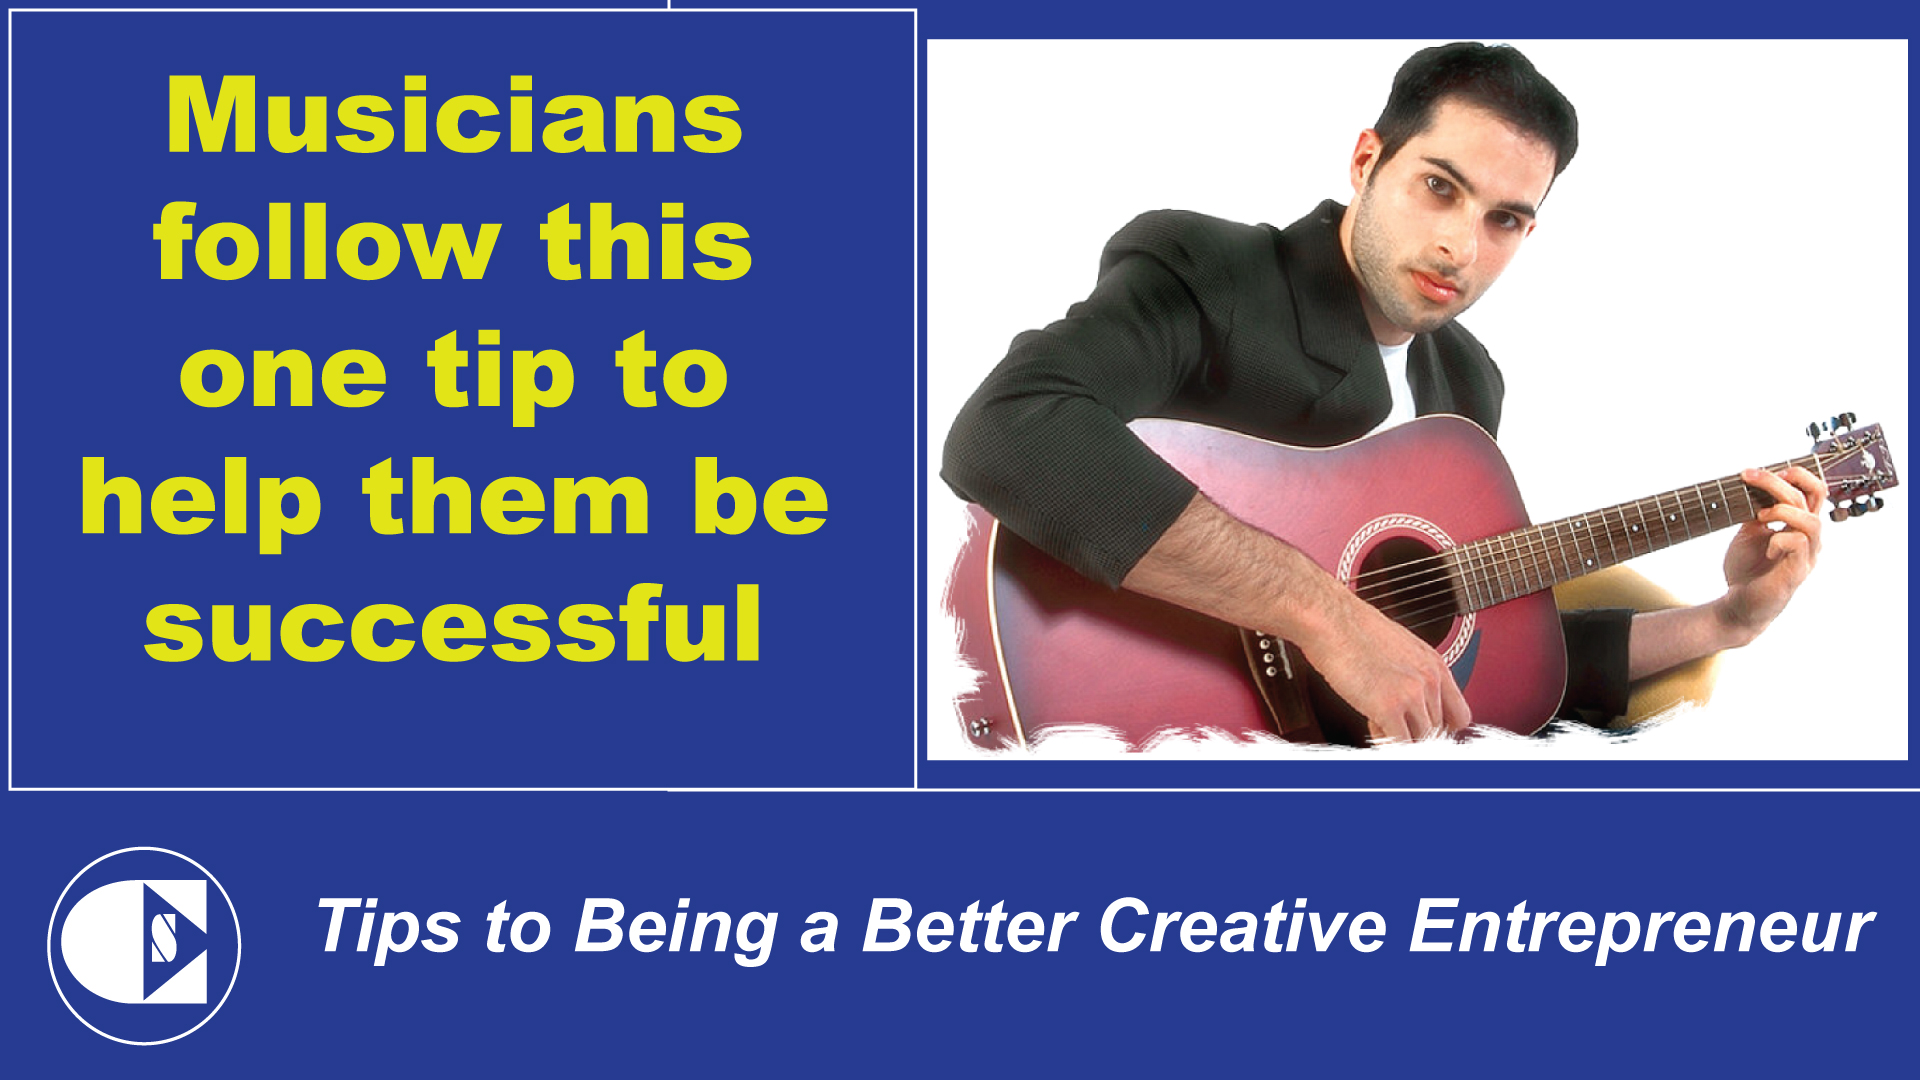 Success Tips for Musicians